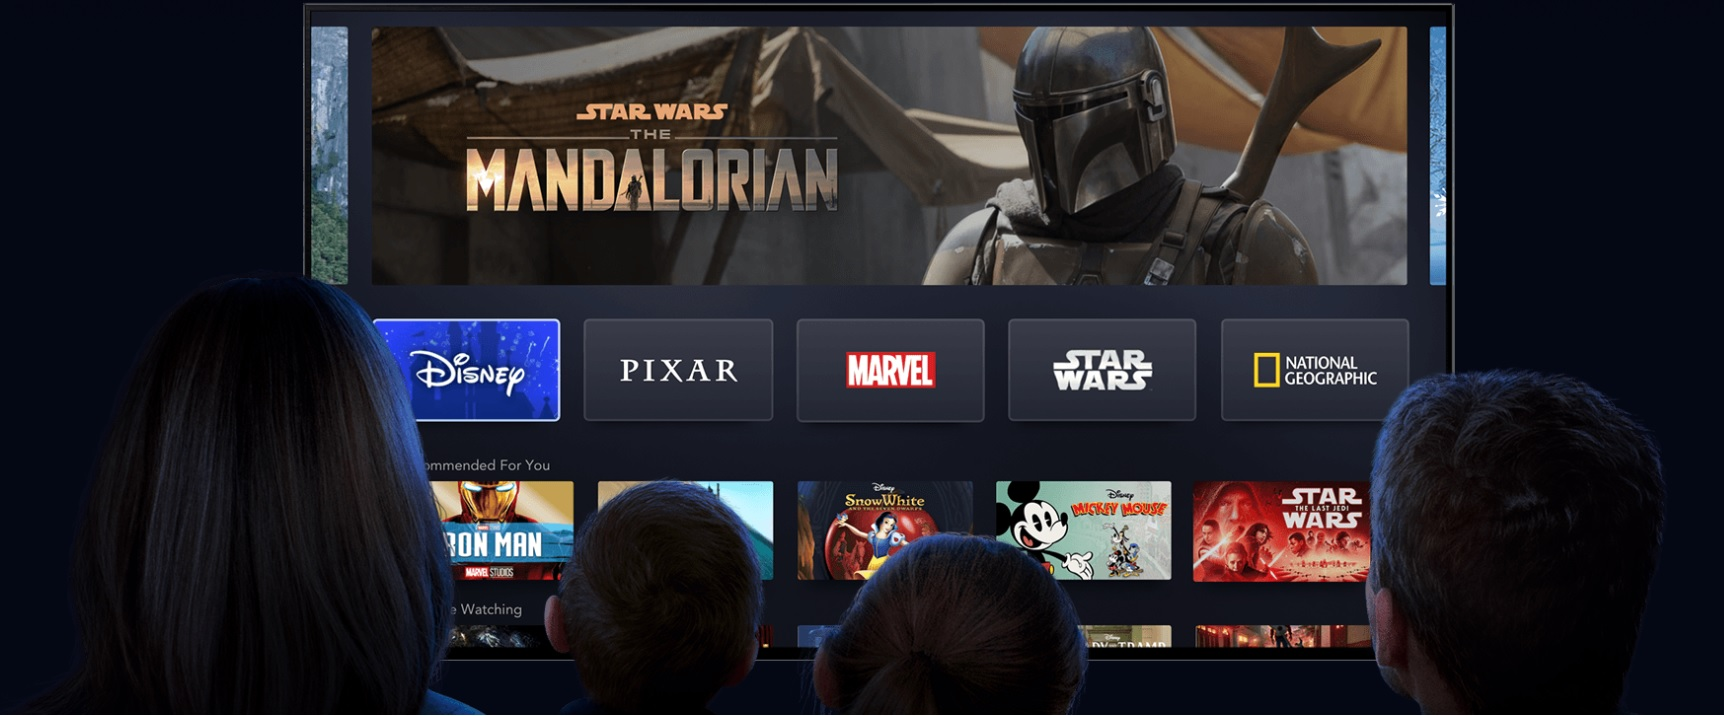 image of family watching disney+ with star wars the mandalorian on screen